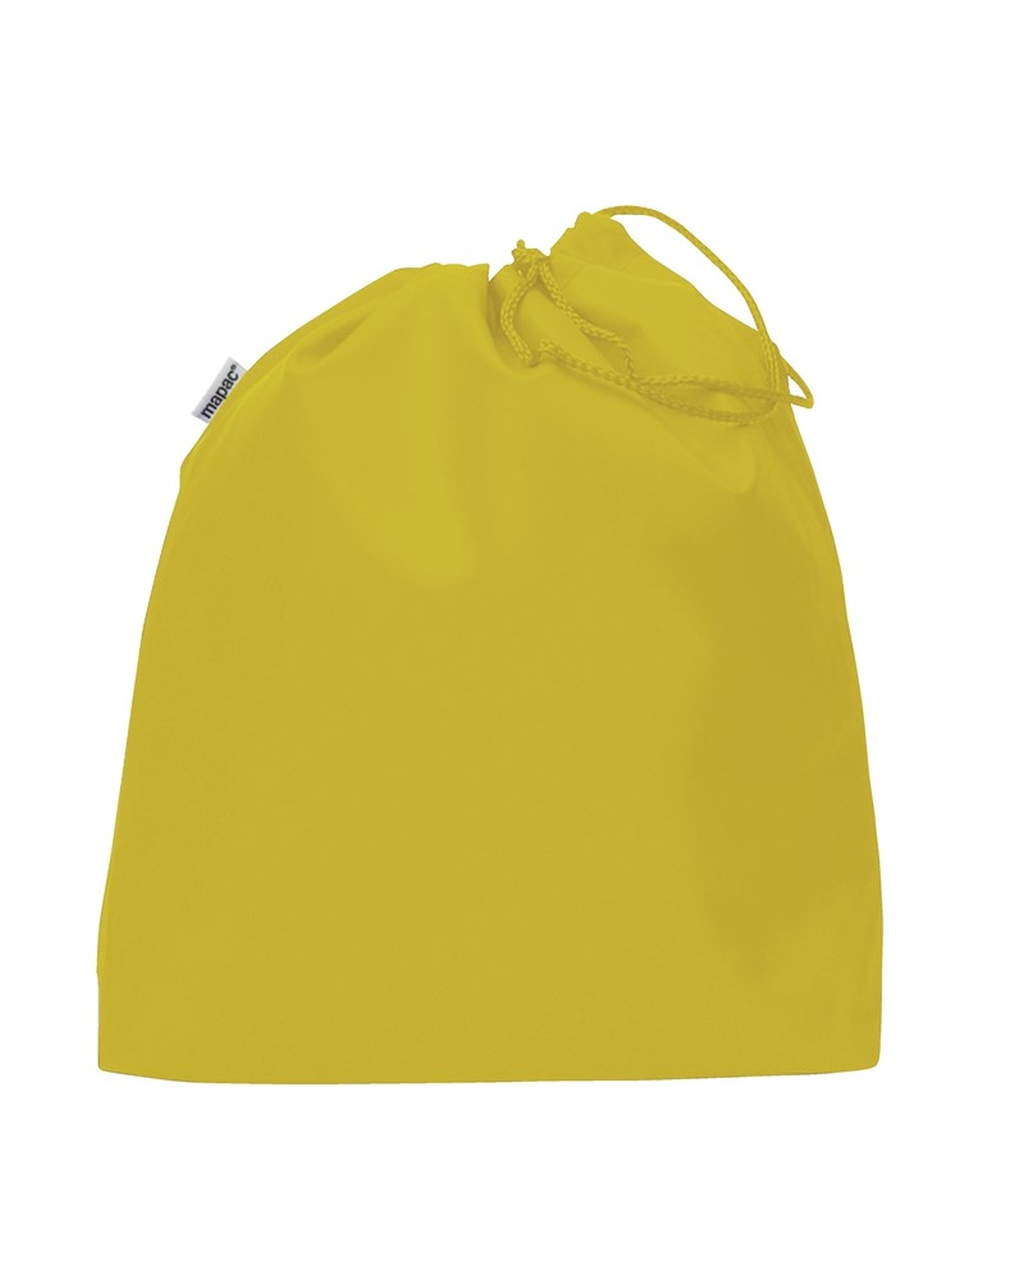 Back Bags 350 x 370mm - Yellow